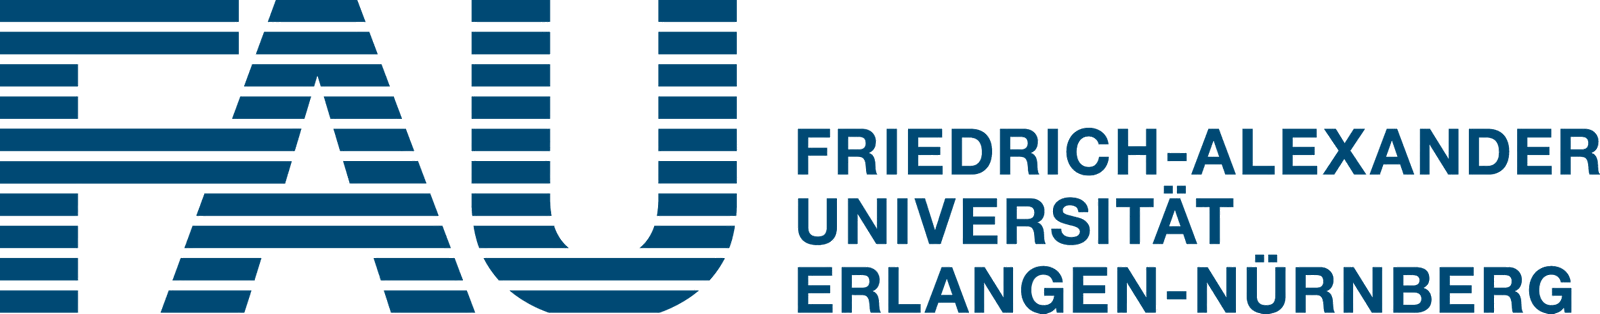 agu, abdullah gül university, international partnerships, erasmus, friedrich alexander universität, germany